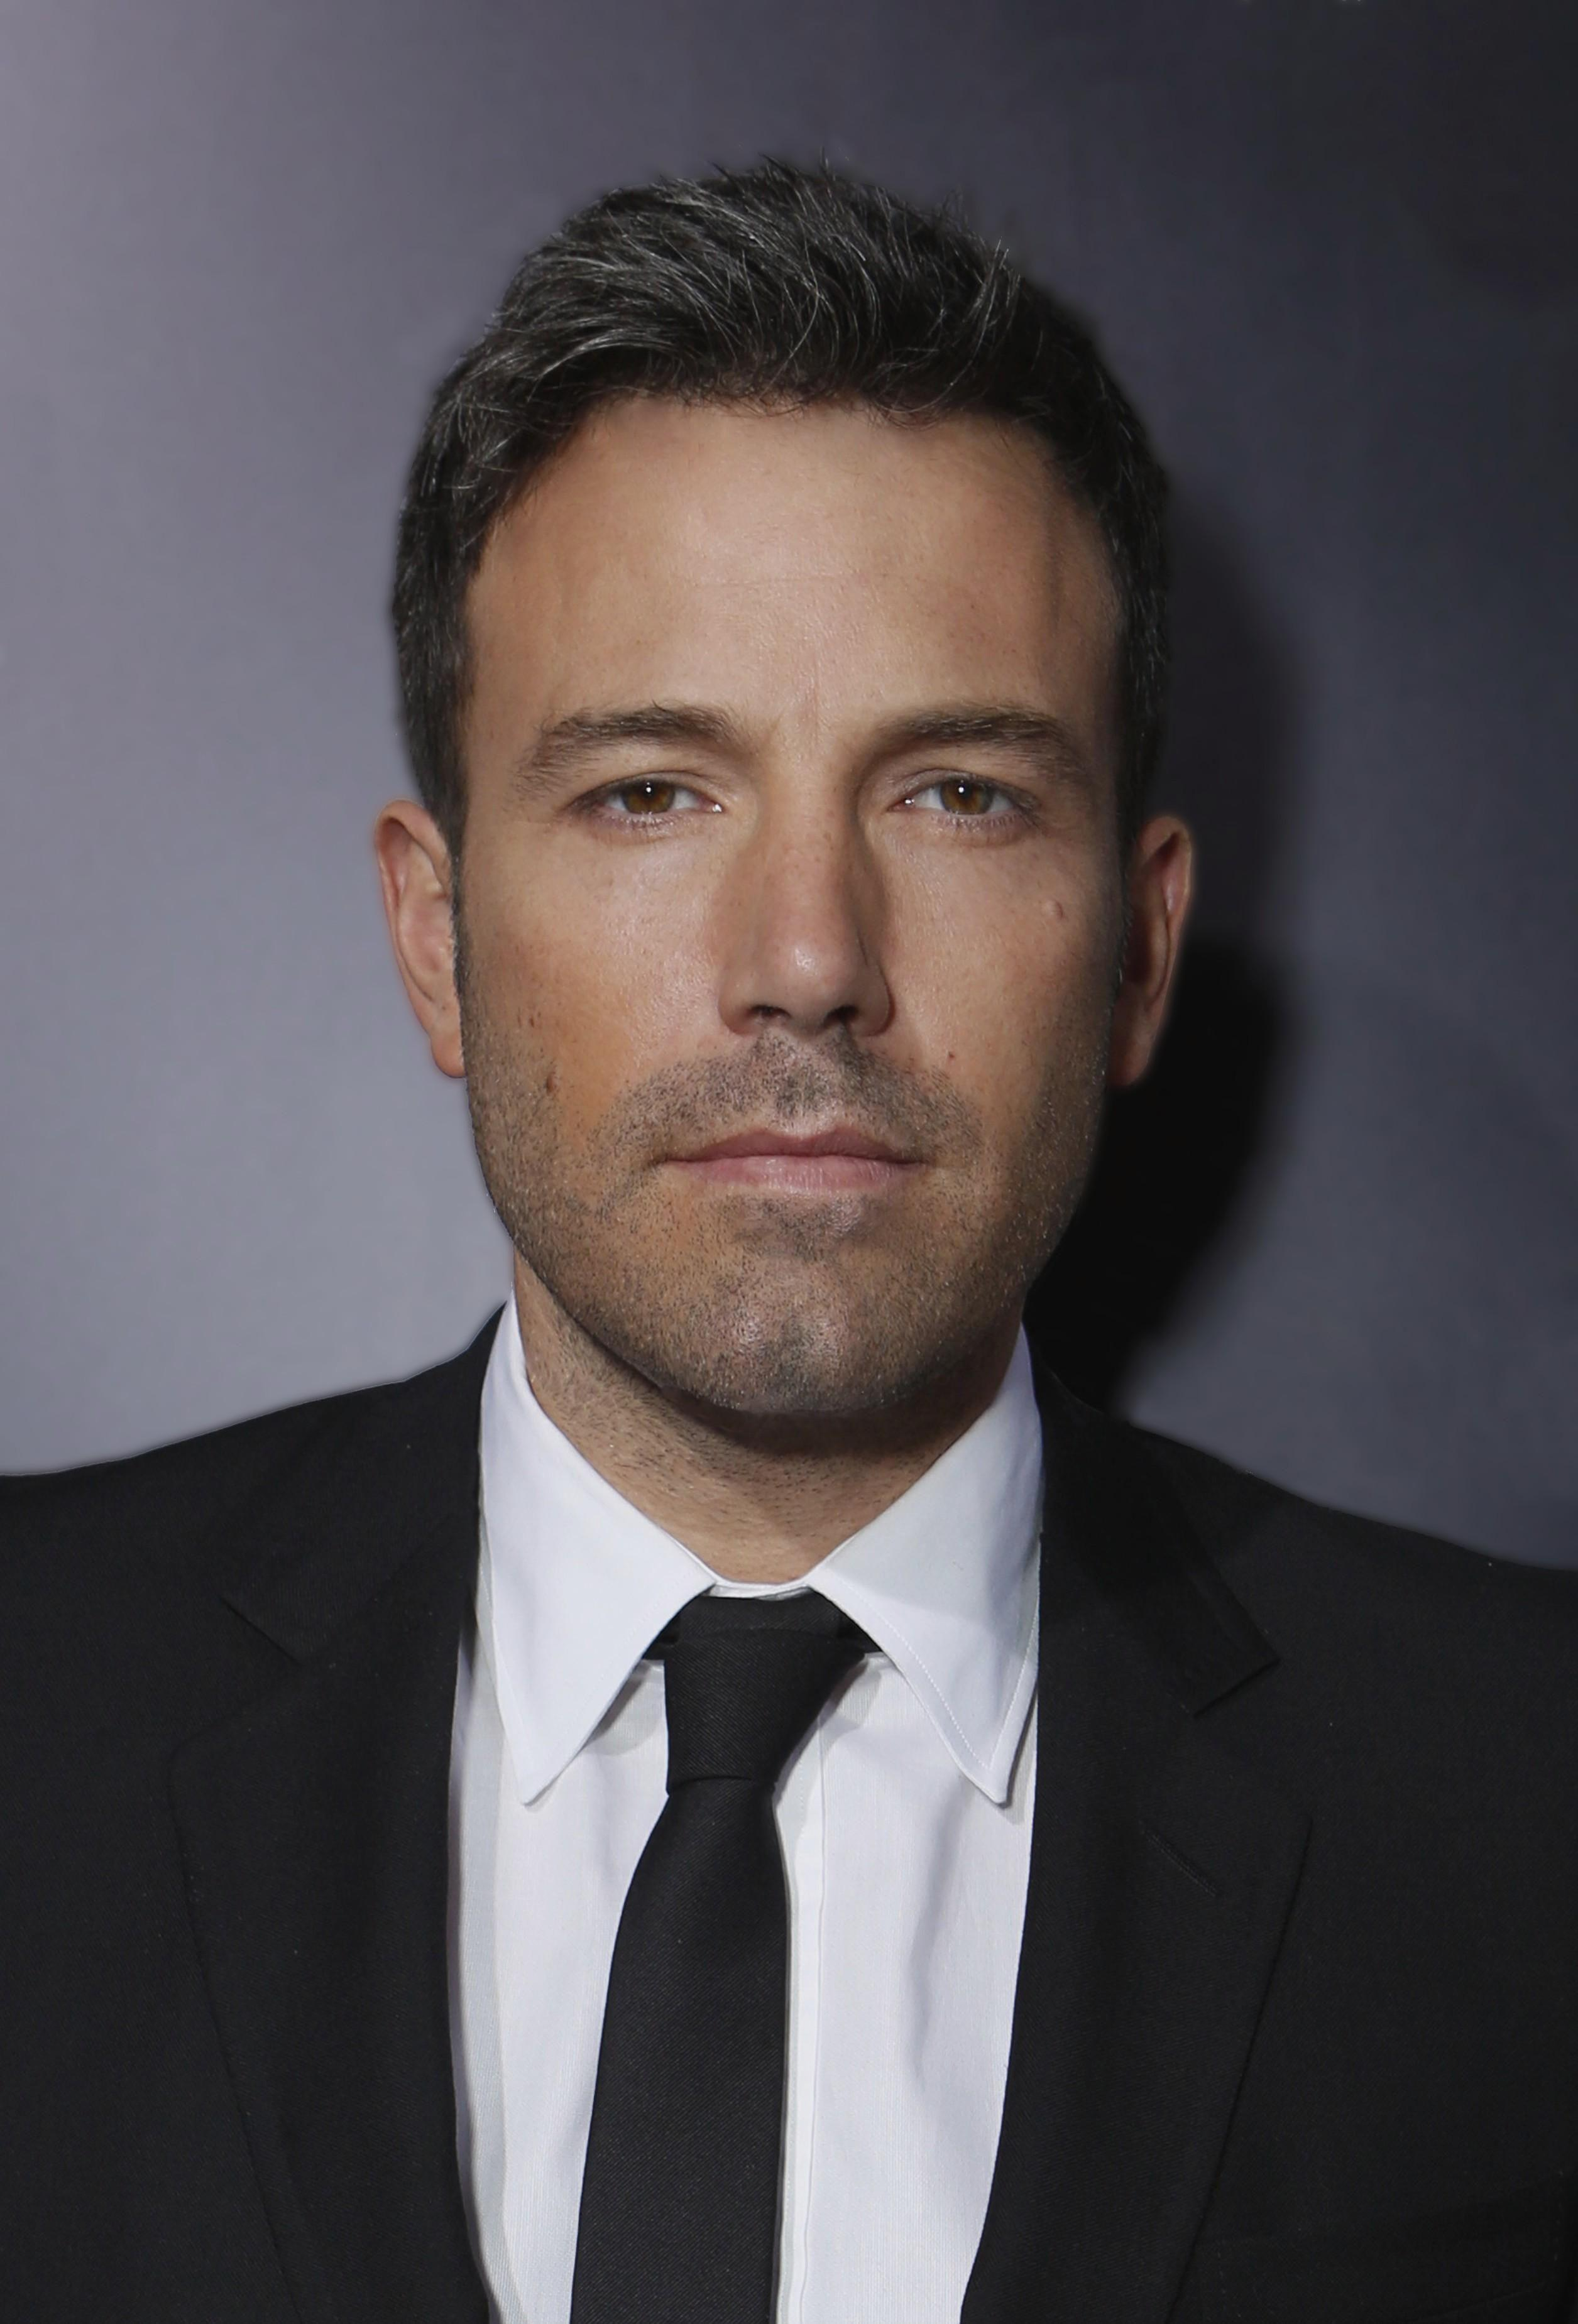 Ben Affleck Wallpapers HD Download